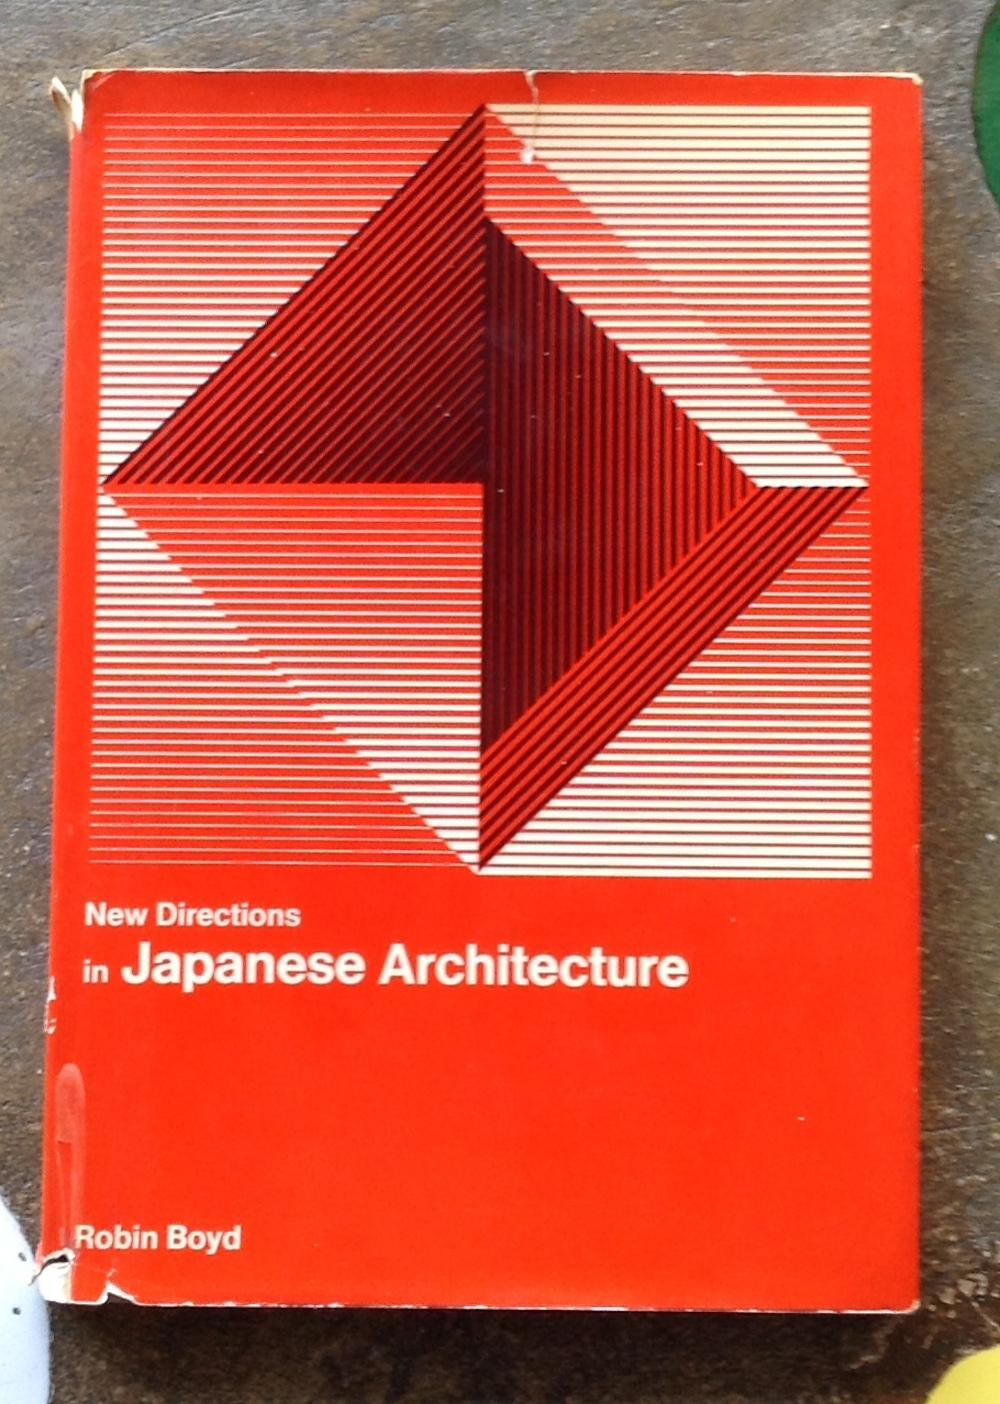 New Directions in Japanese Architecture